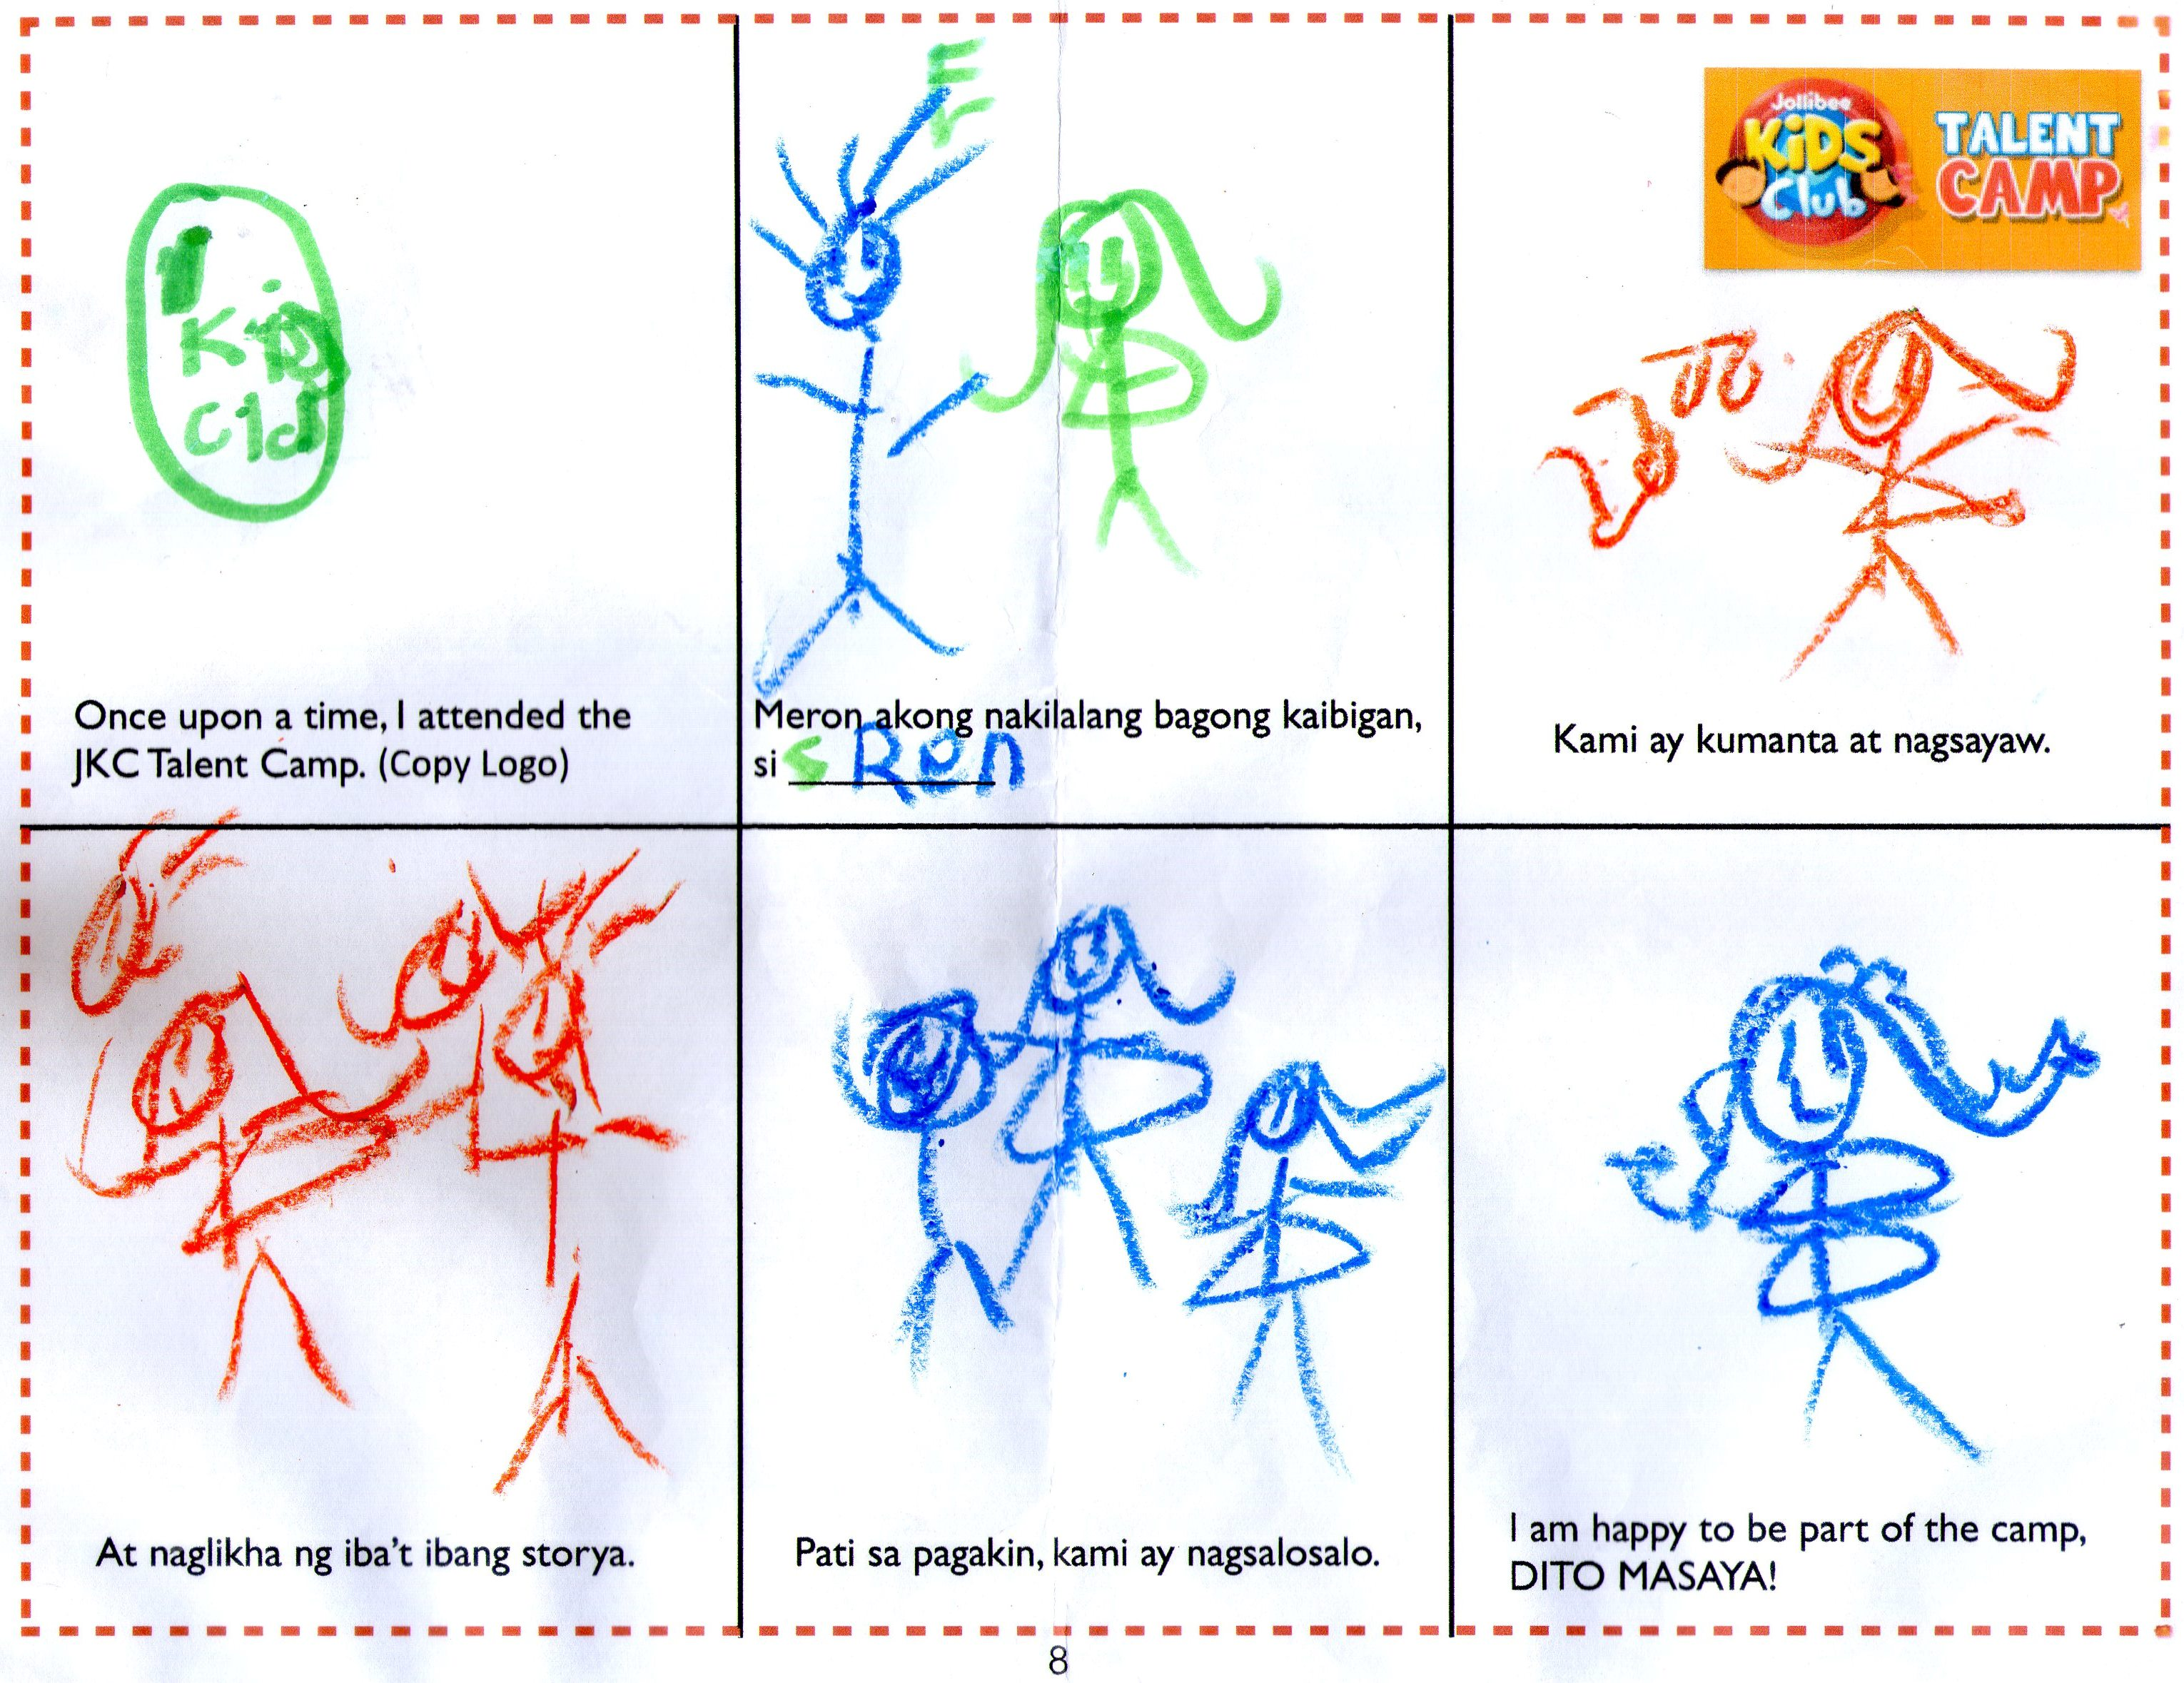 JKC Talent Camp Storyboard About A Friend